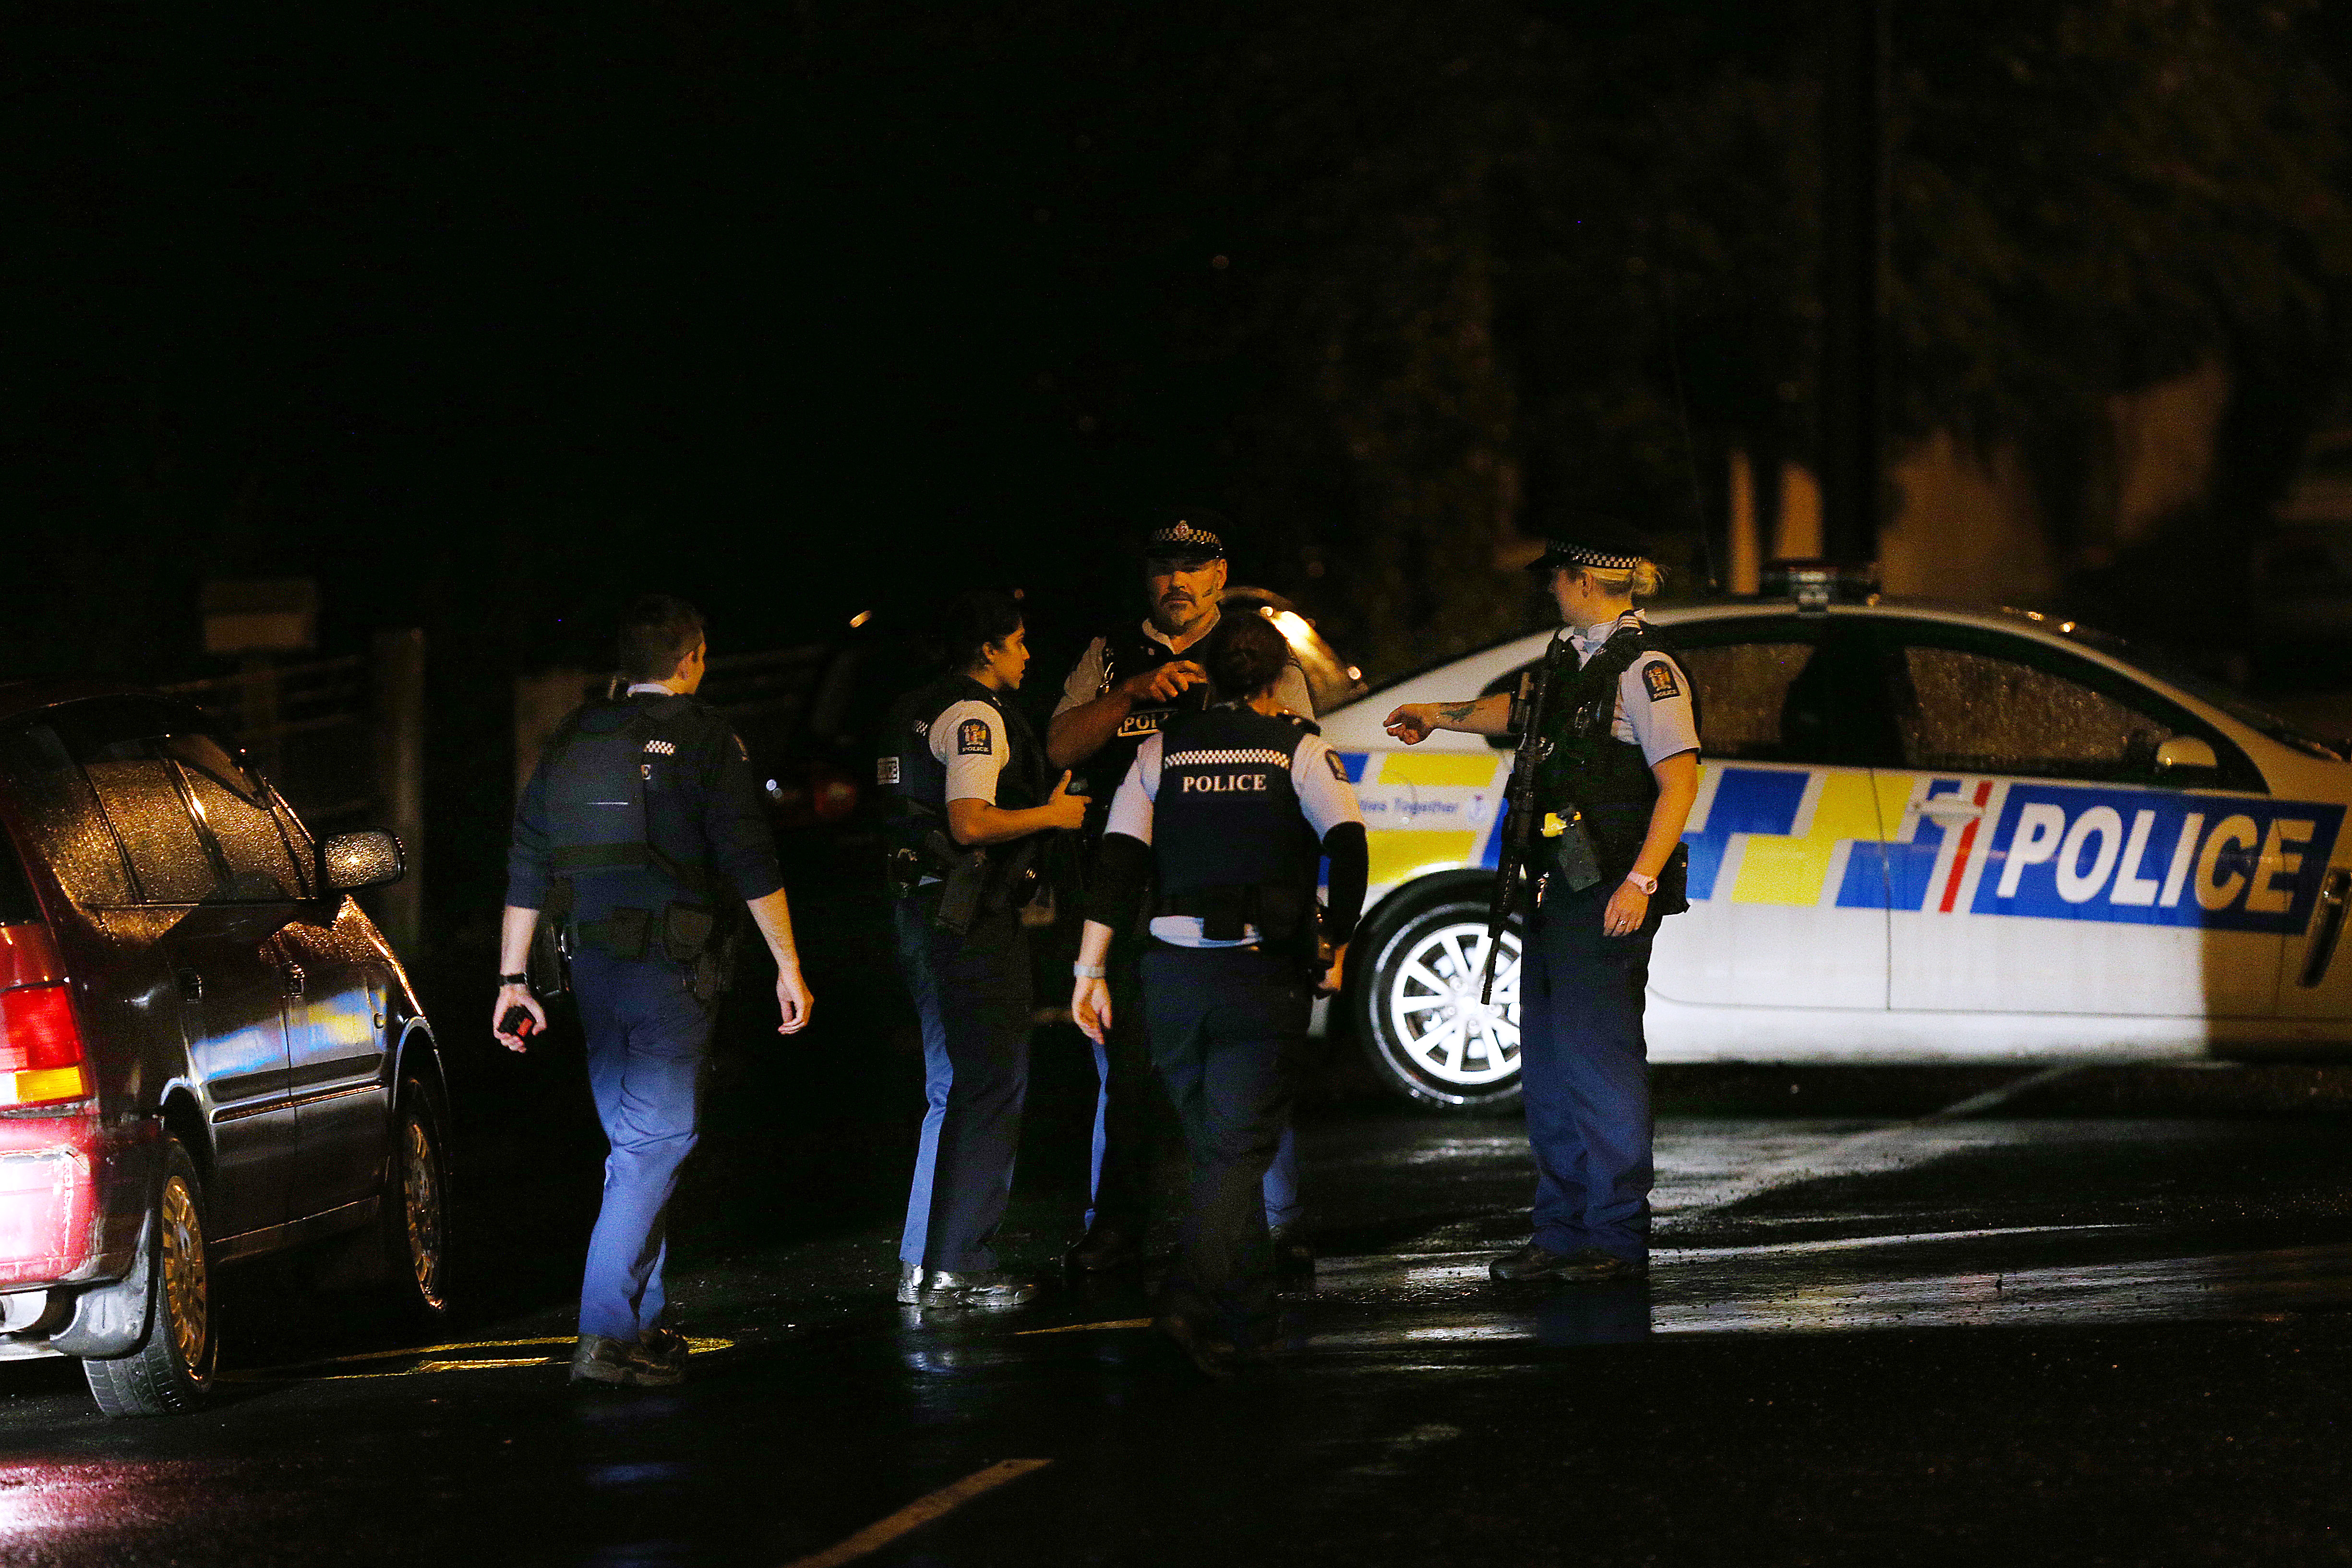 Police investigate a property at Somerville Street on March 15, 2019 in Dunedin, New Zealand. Residents have been evacuated off the street as police investigate a property believed to be related to the deadly terror attacks in Christchurch today. At least 49 people are confirmed dead, with more than 40 people injured following attacks on two mosques in Christchurch. (Getty Images)